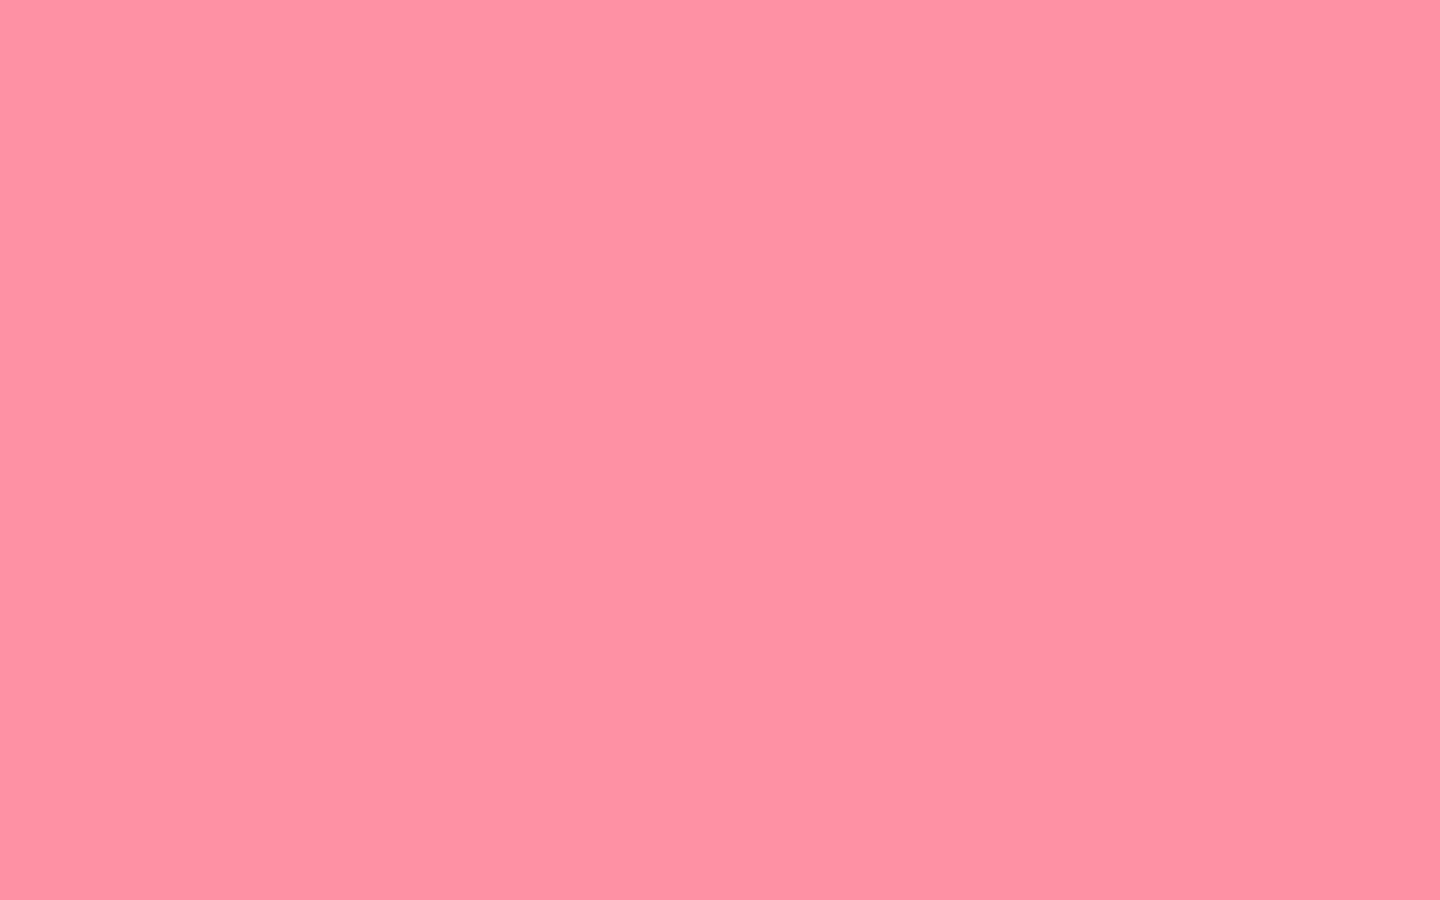 1440x900 Salmon Pink Solid Color Background